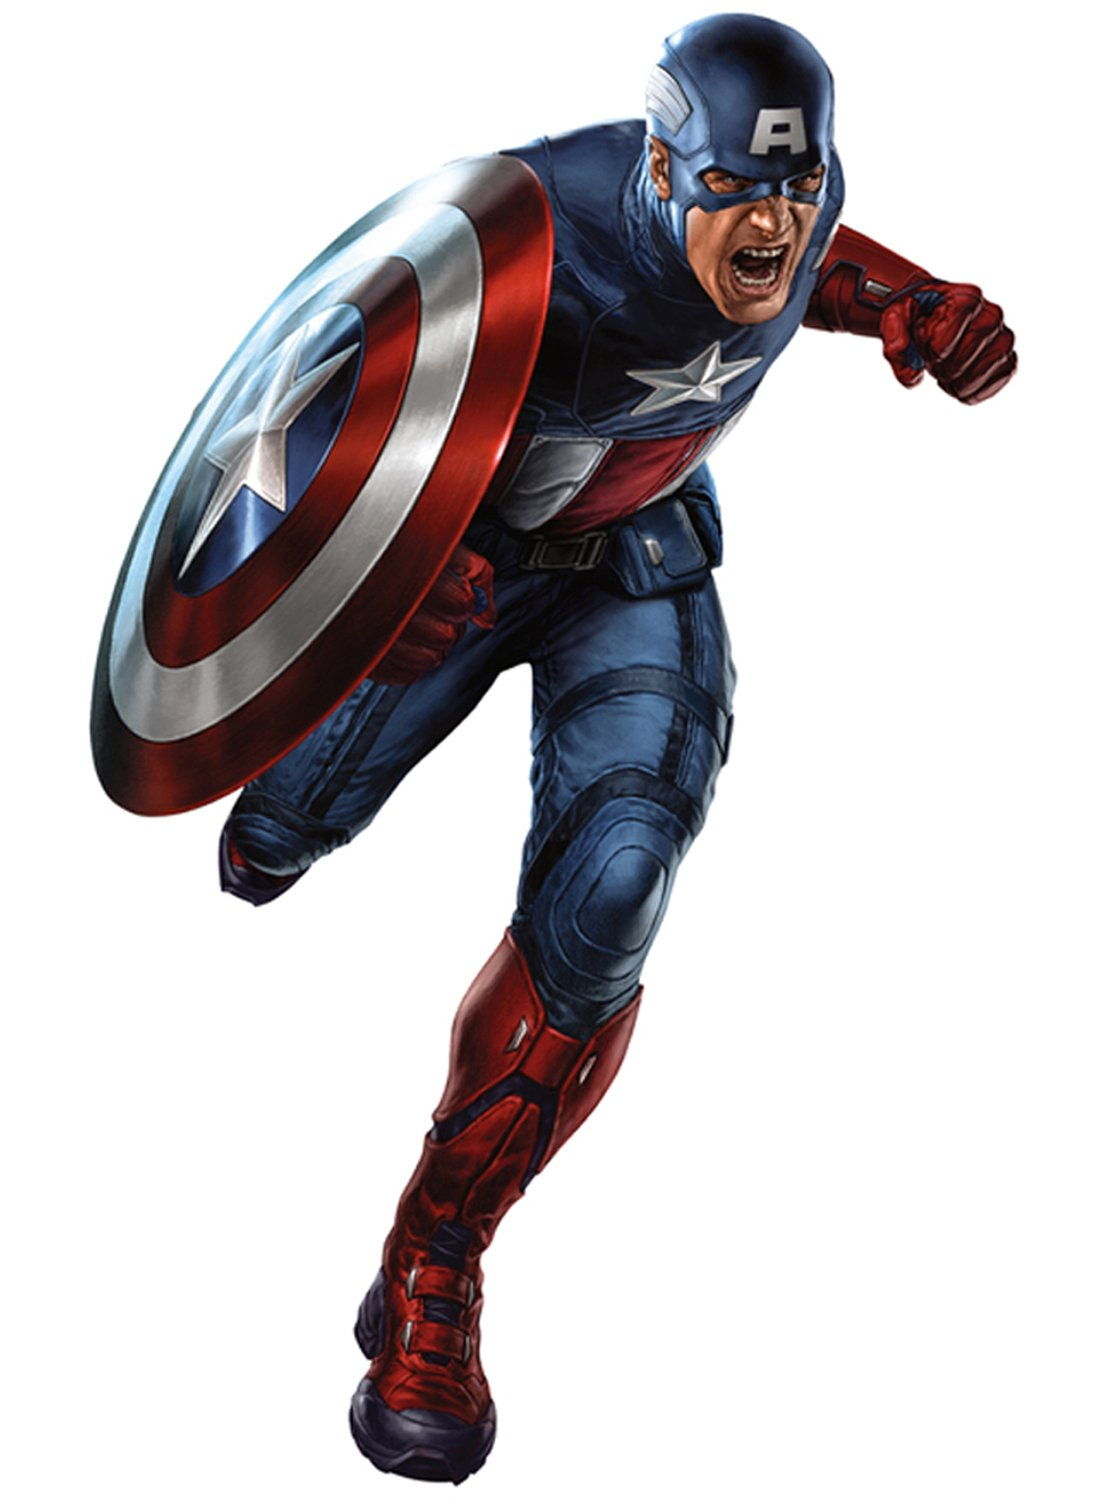 Captain America Wall sicker Vinyl wall art 3 SIZES for cars bikes caravans homes Customise4UTM (700mm) by Customise4u WallArt